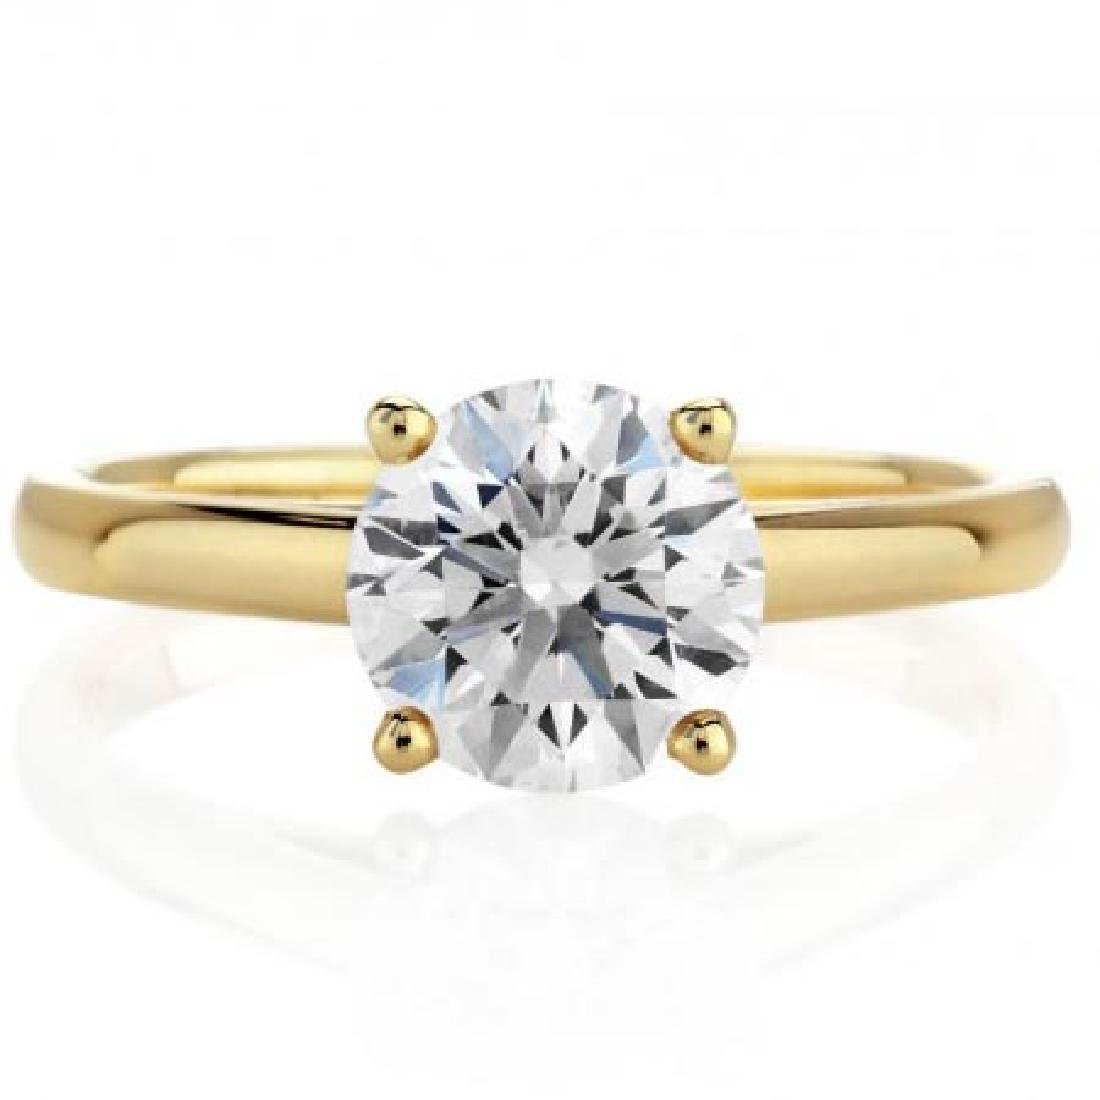 CERTIFIED 1 CTW ROUND D/I1 SOLITAIRE RING IN 14K YELLOW